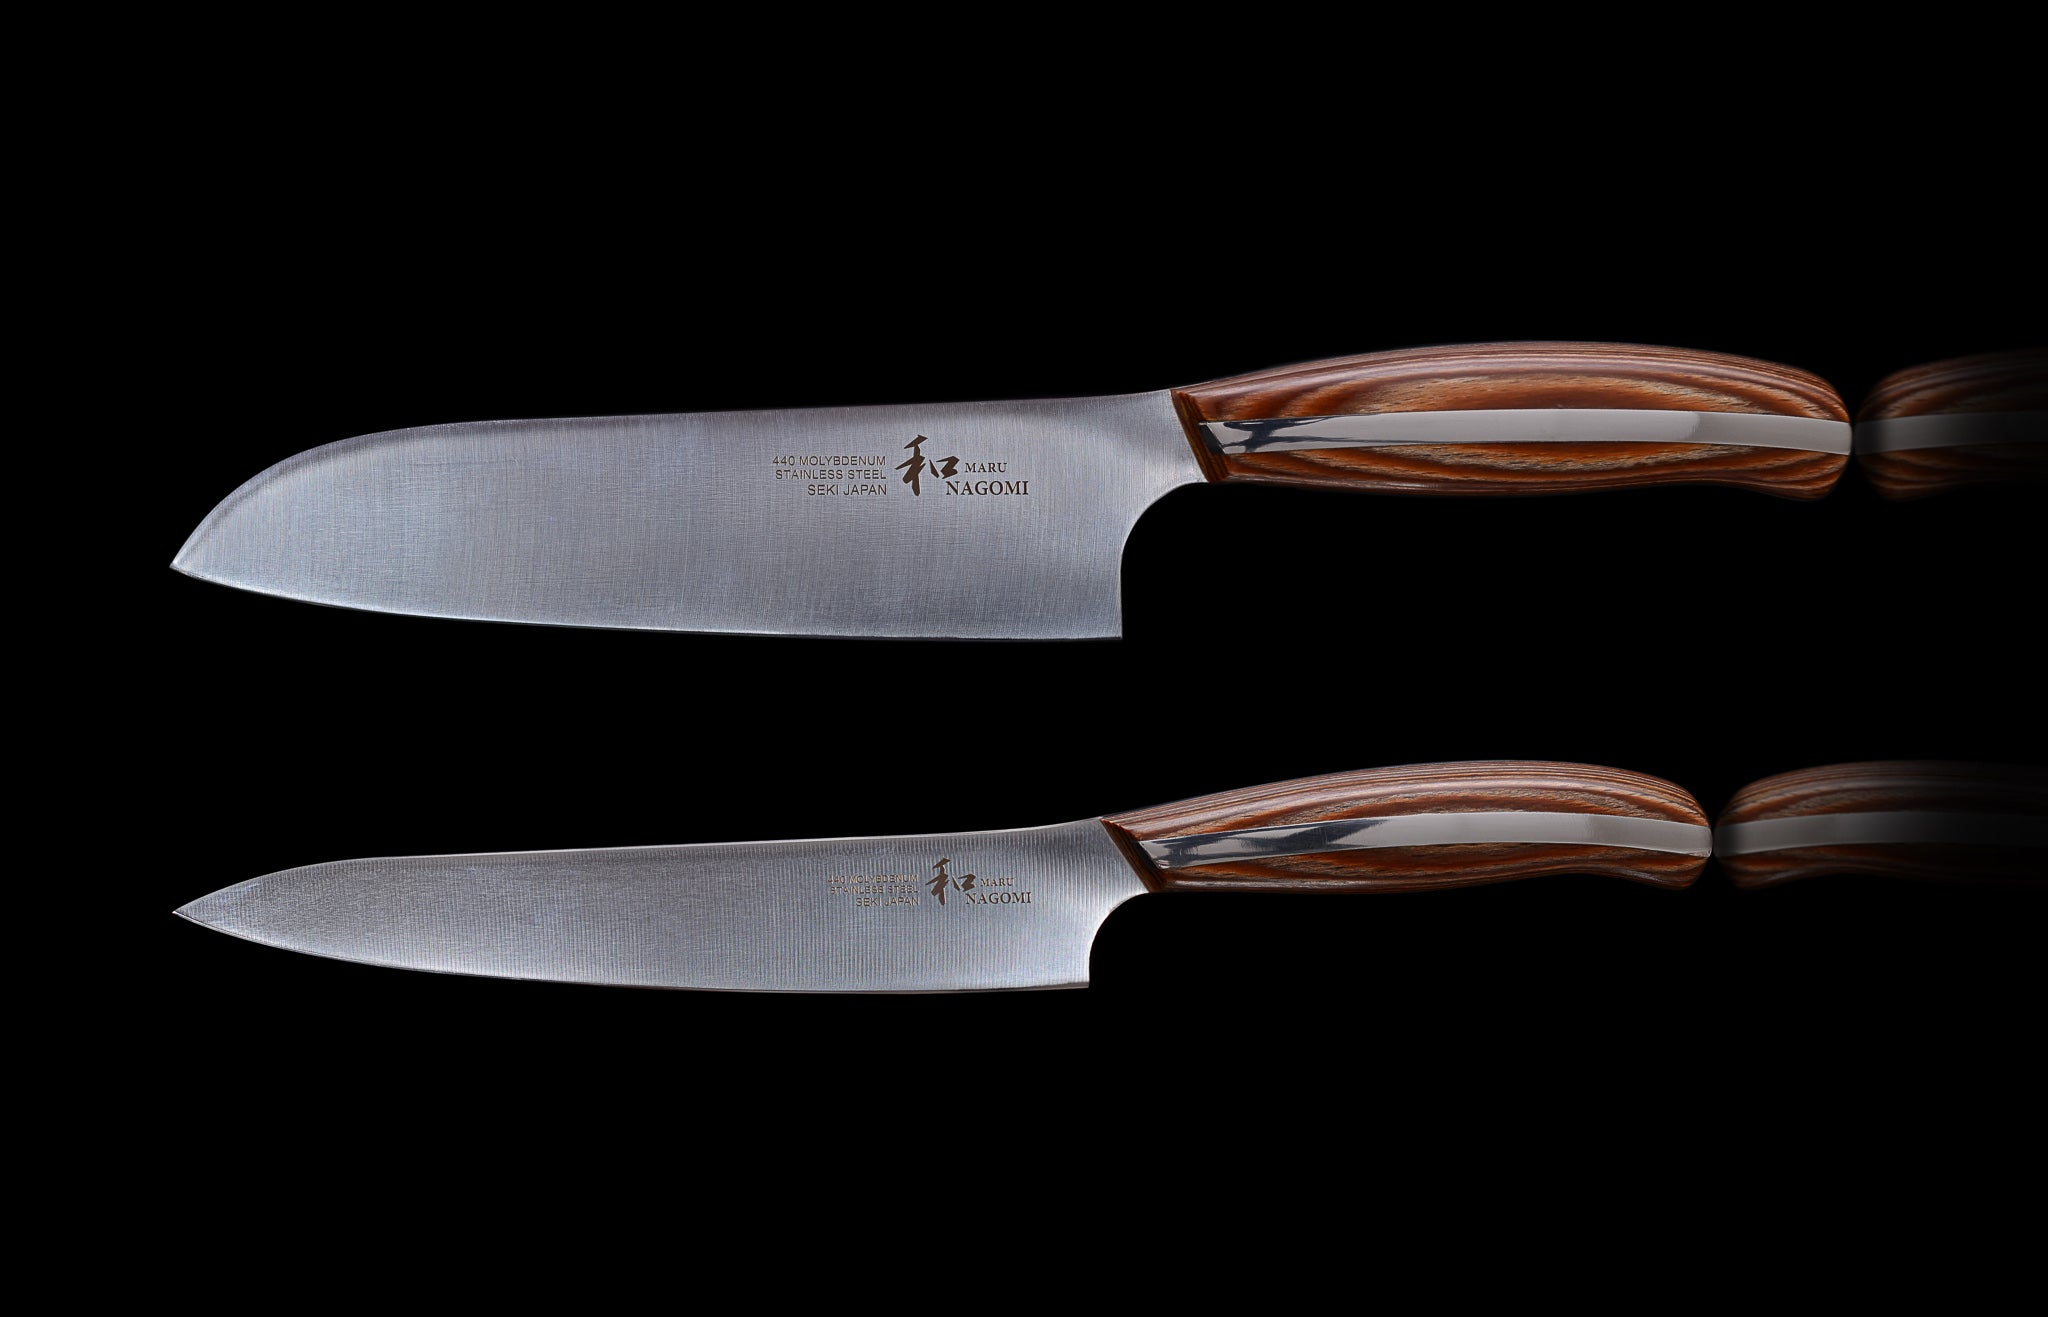 Two Piece Set (Santoku Knife and Utility Knife)